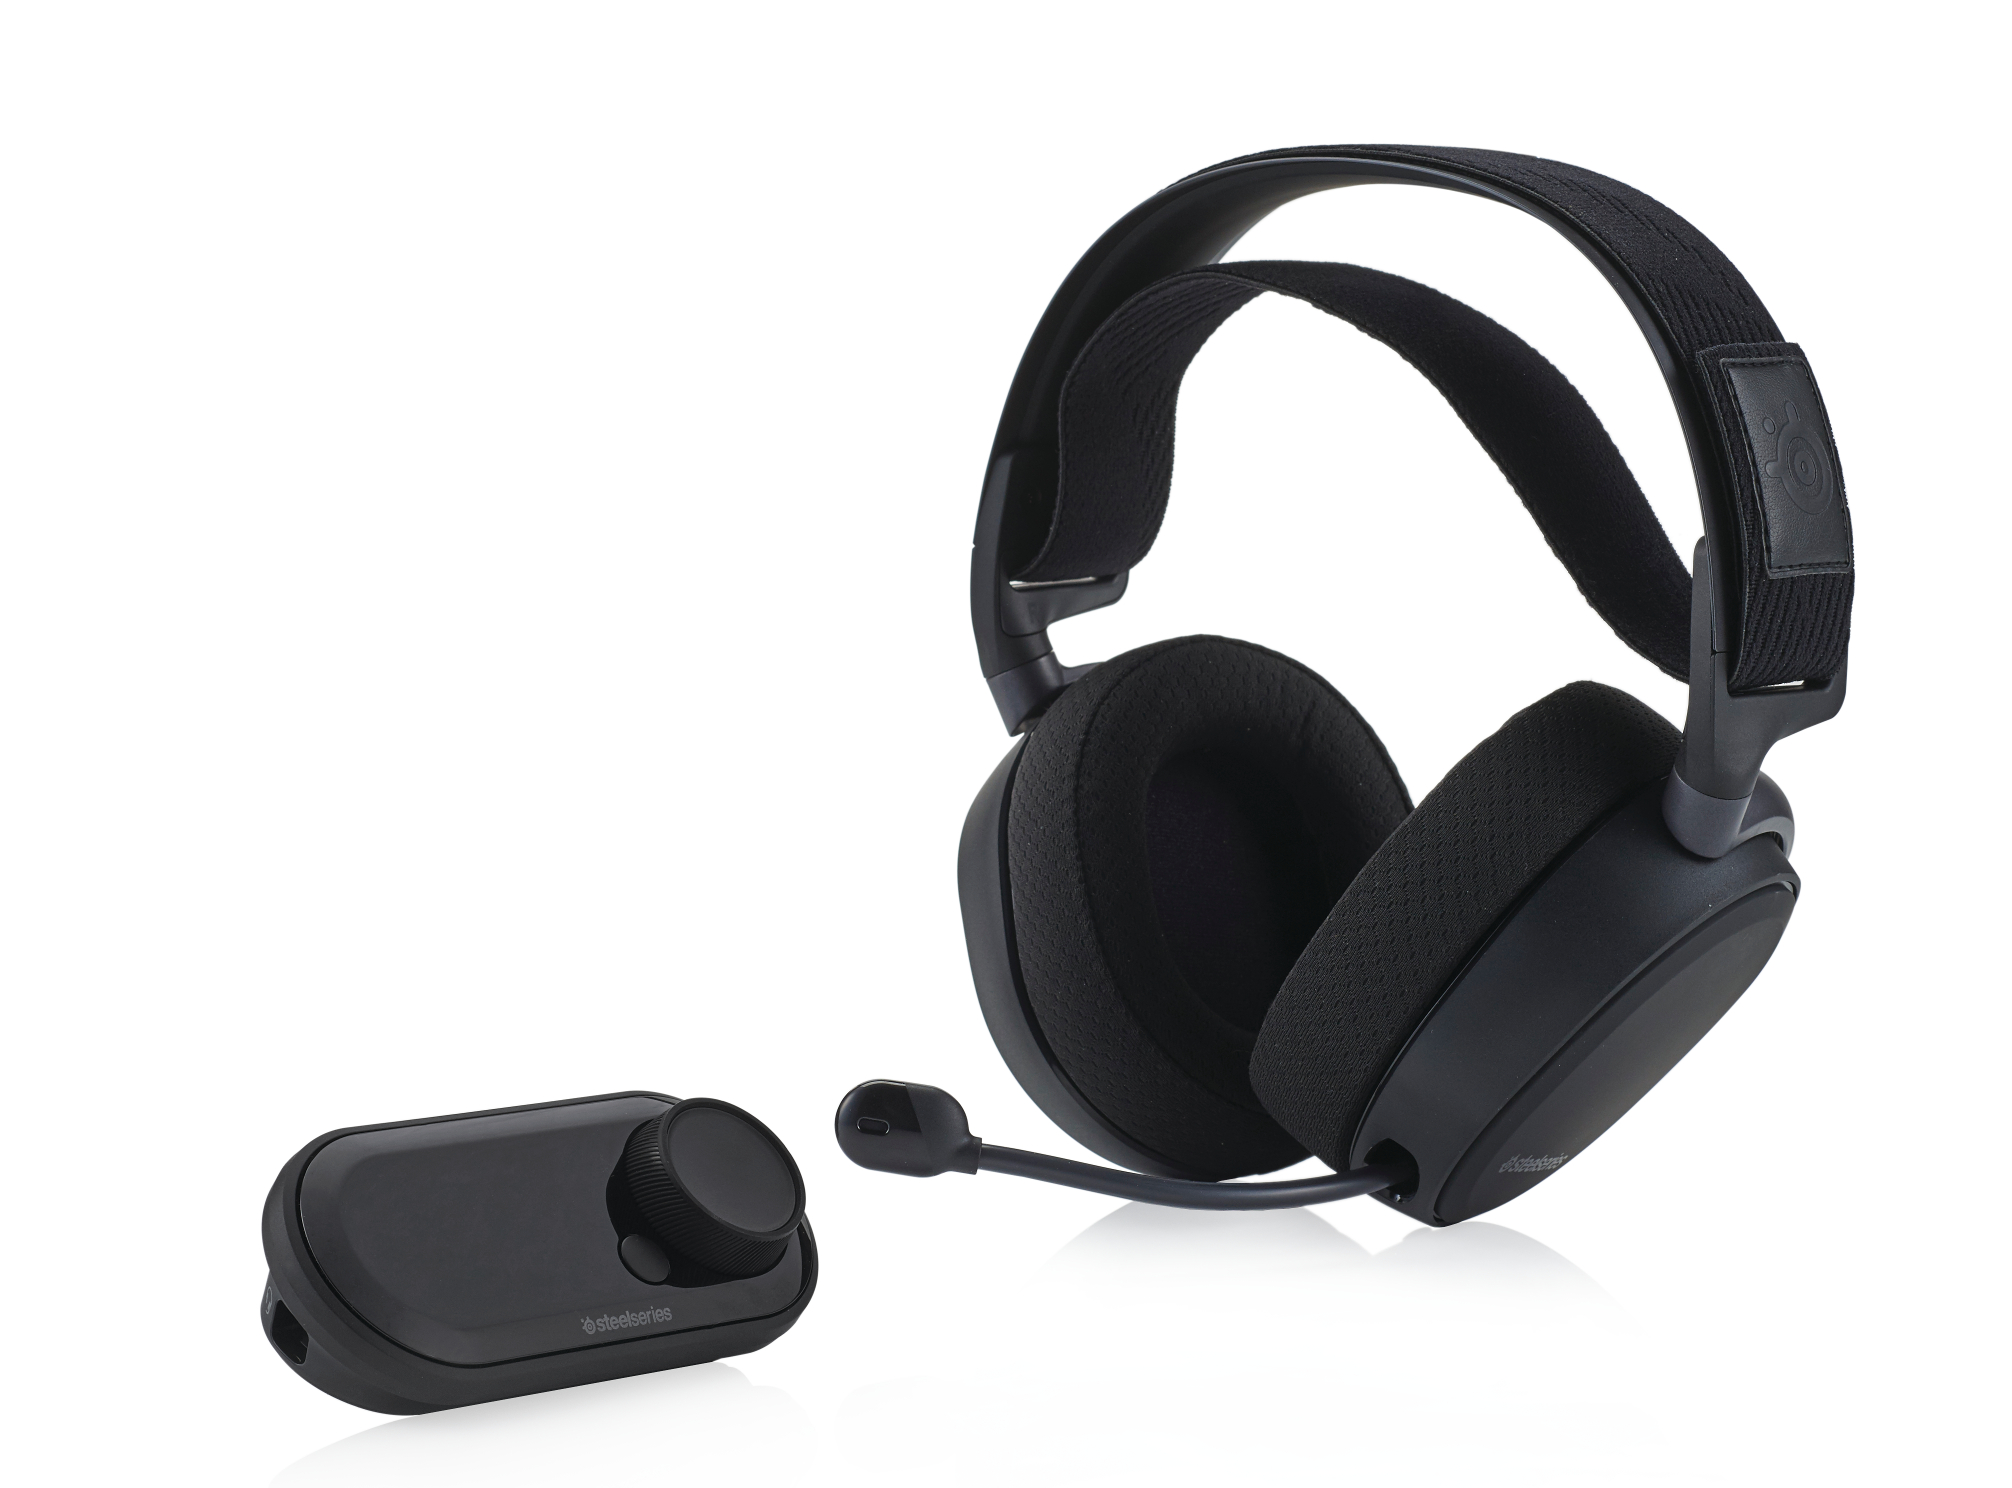 SteelSeries Arctis Pro + GameDAC headphones review | PC Gamer